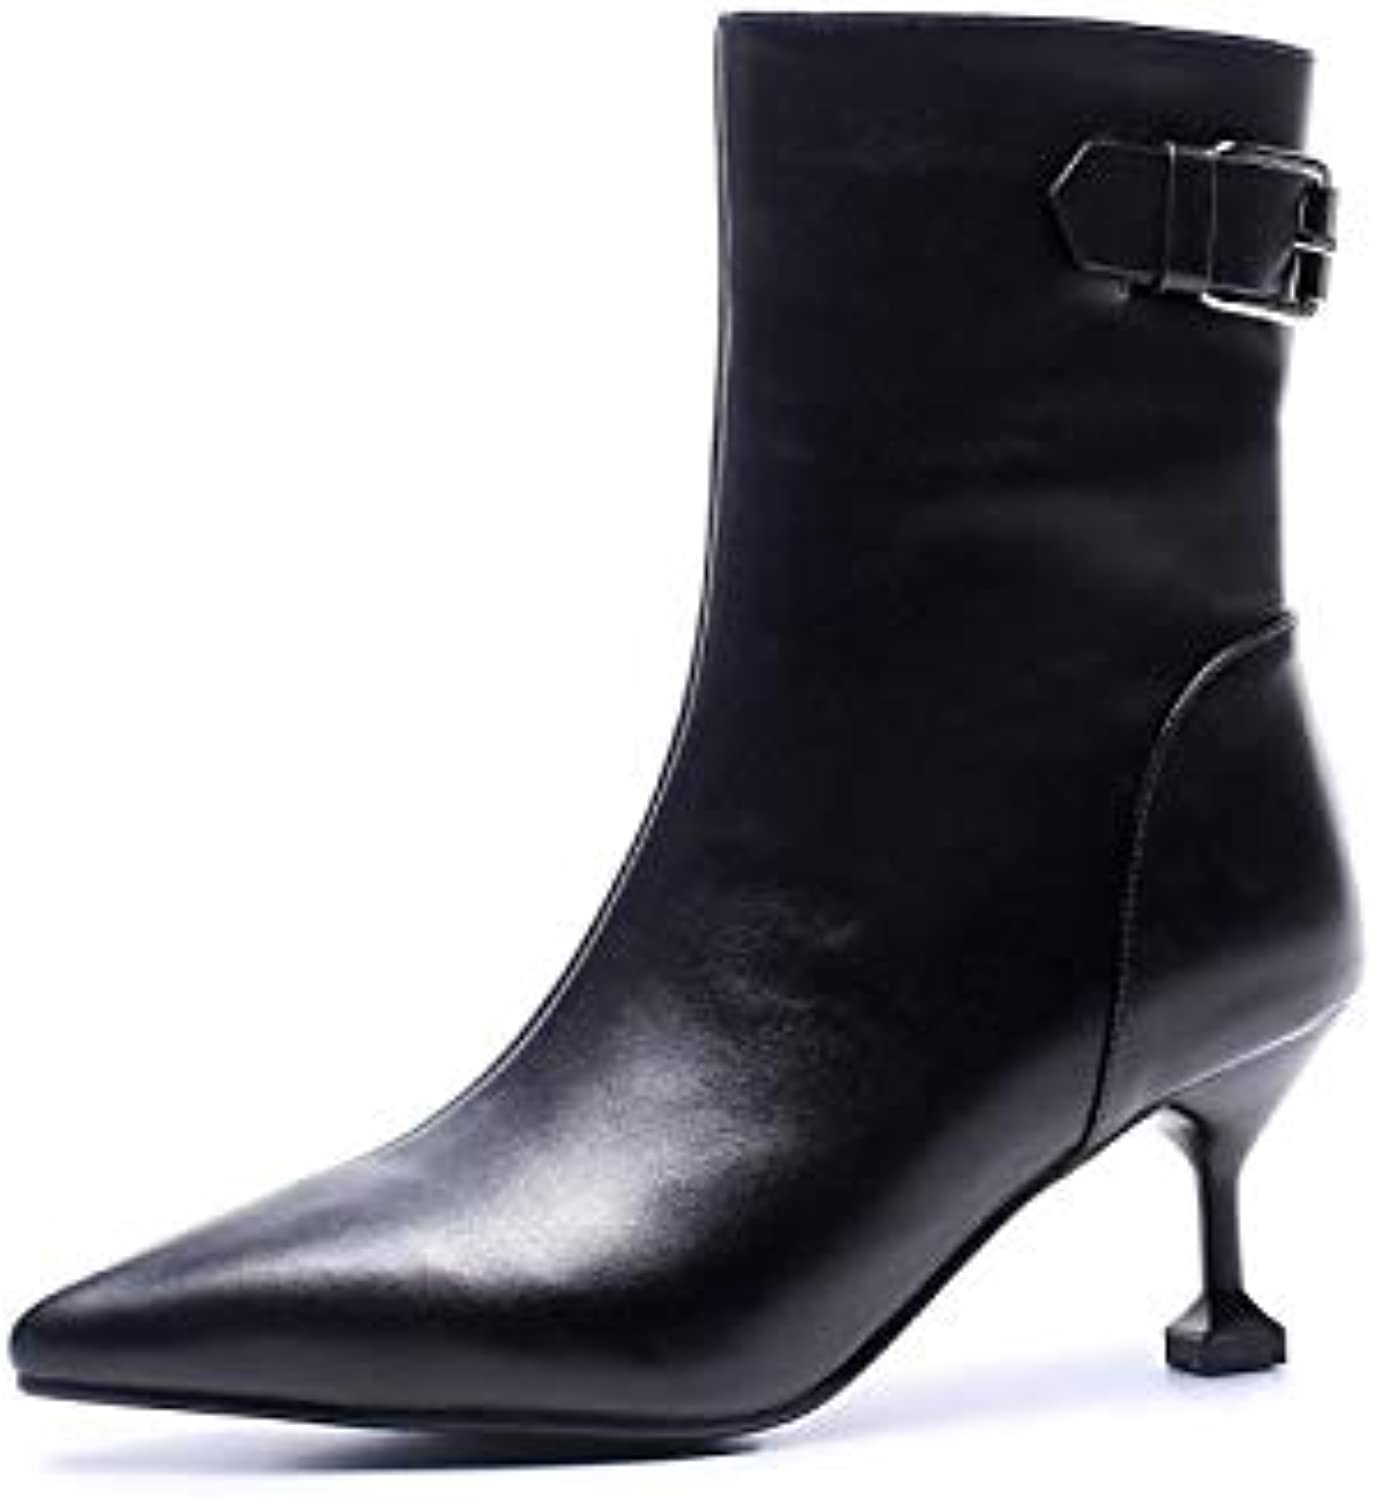 e453a8da68c6c Women's Women's Women's shoes Nappa Leather Fall & Winter Comfort Boots  Flared Heel White Black 57ae18